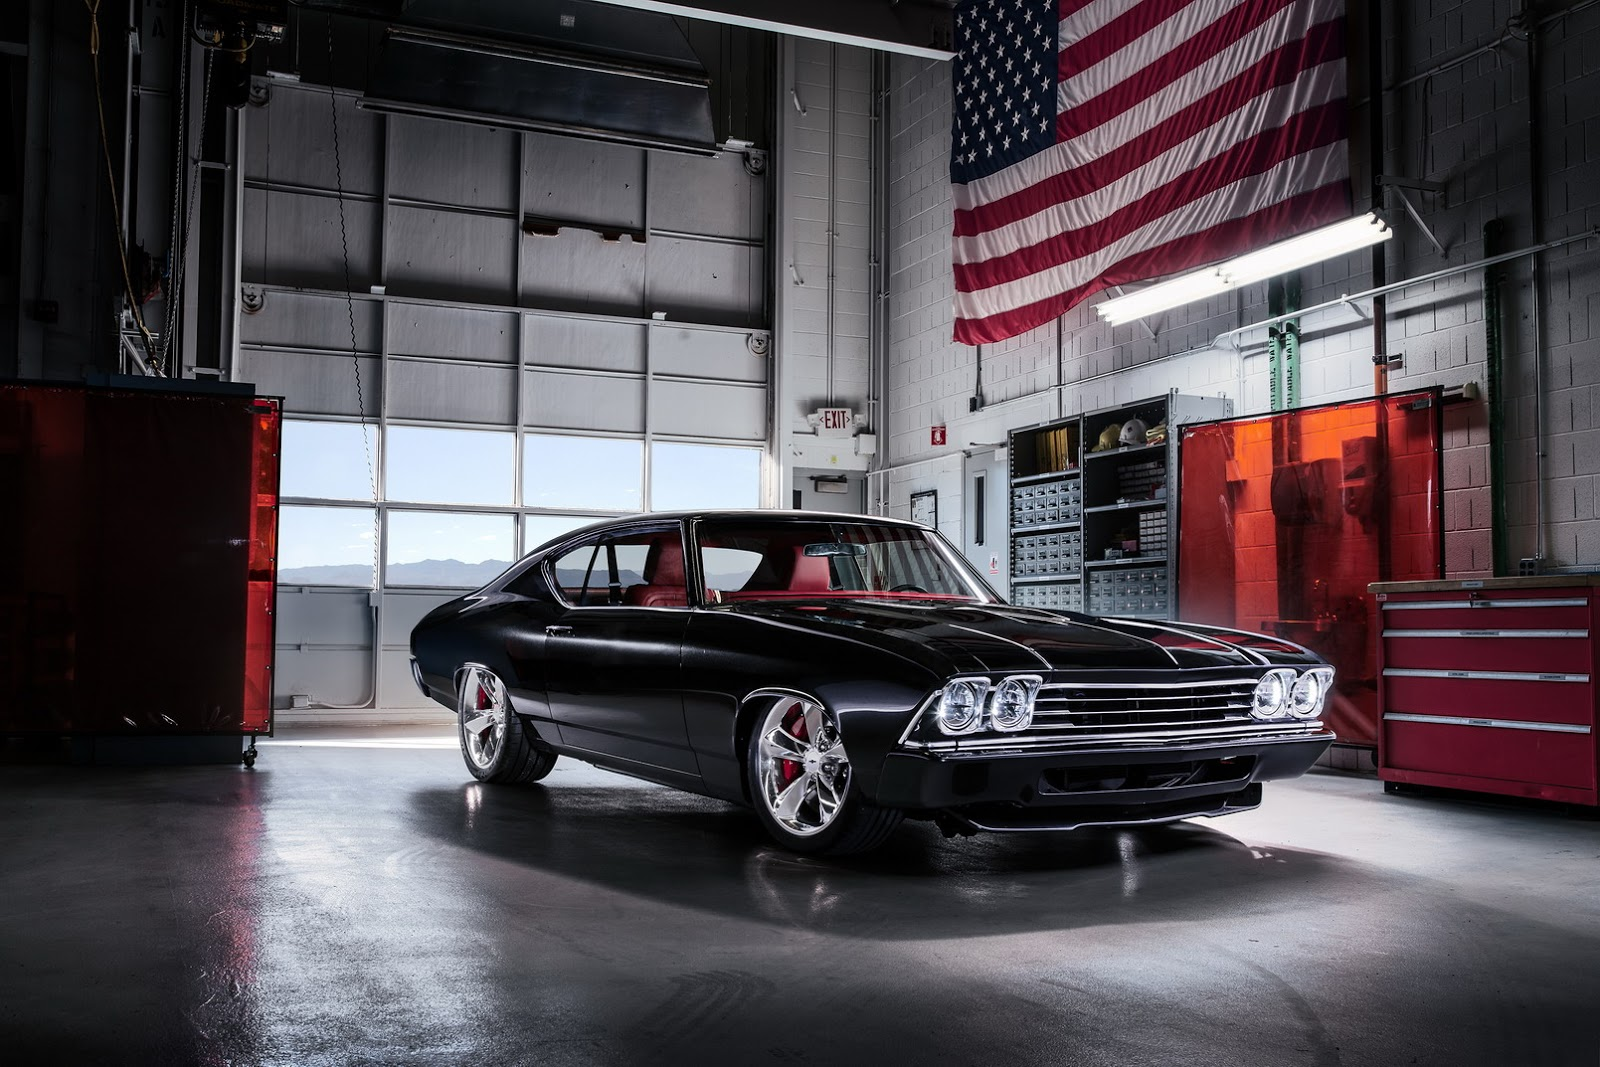 Chevy\'s Chevelle Slammer Is An Old Skool Concept With New Tricks Up ...